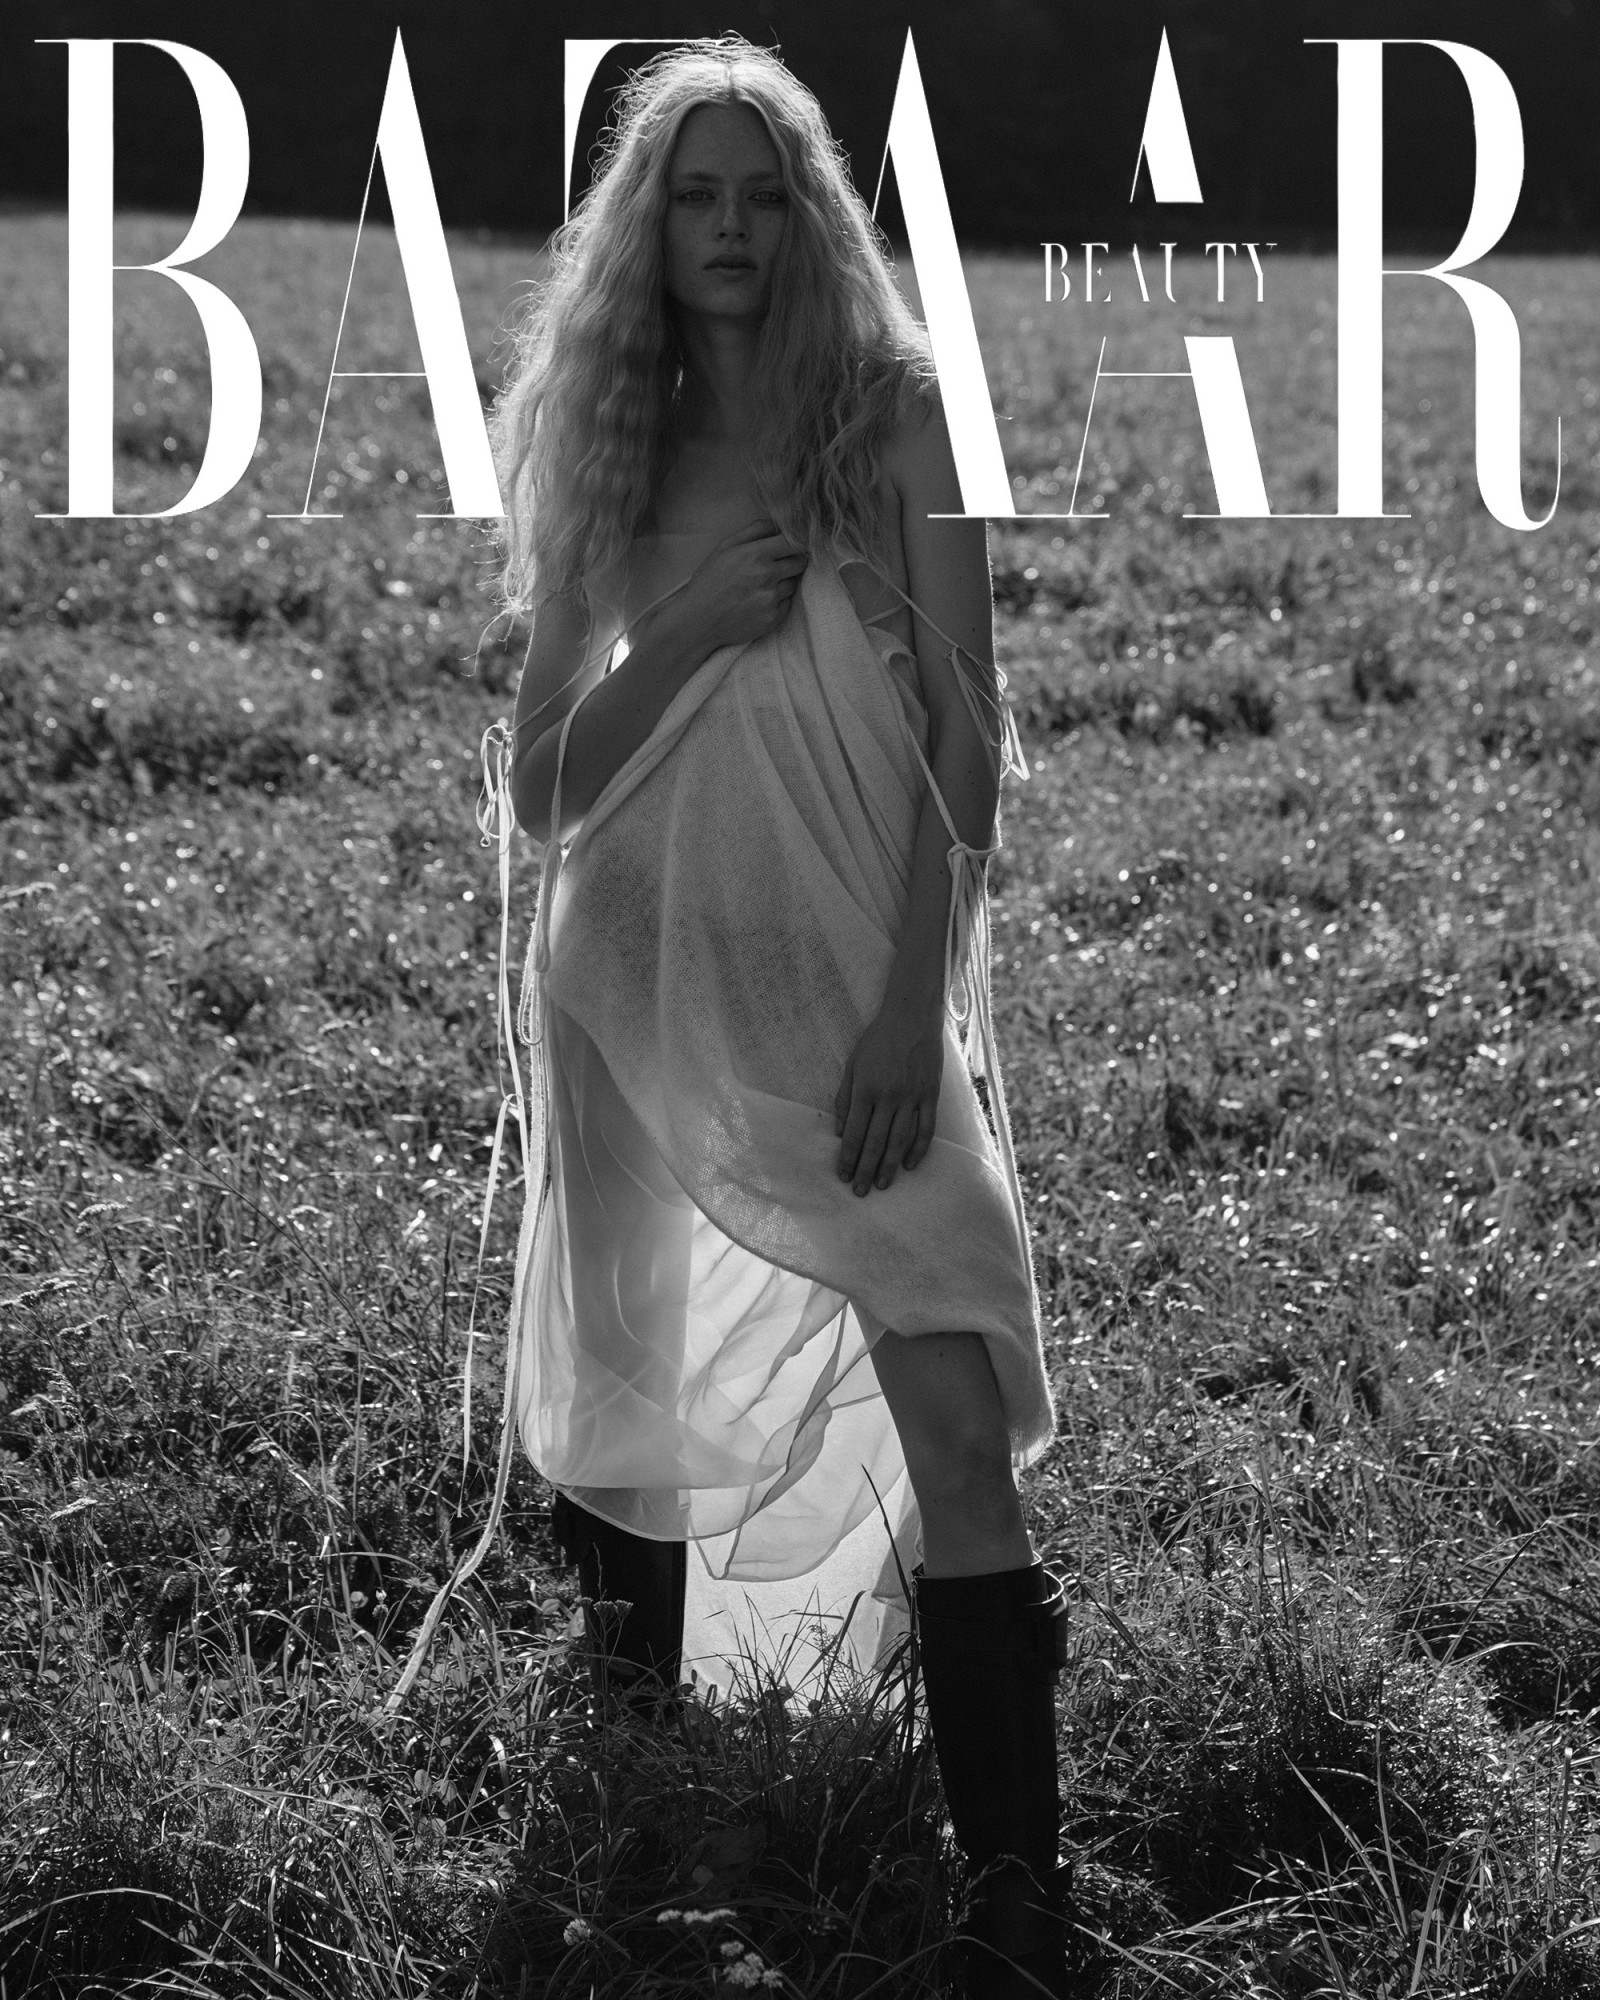 Harpers Bazaar Turkey 1 by Andreas ORTNER